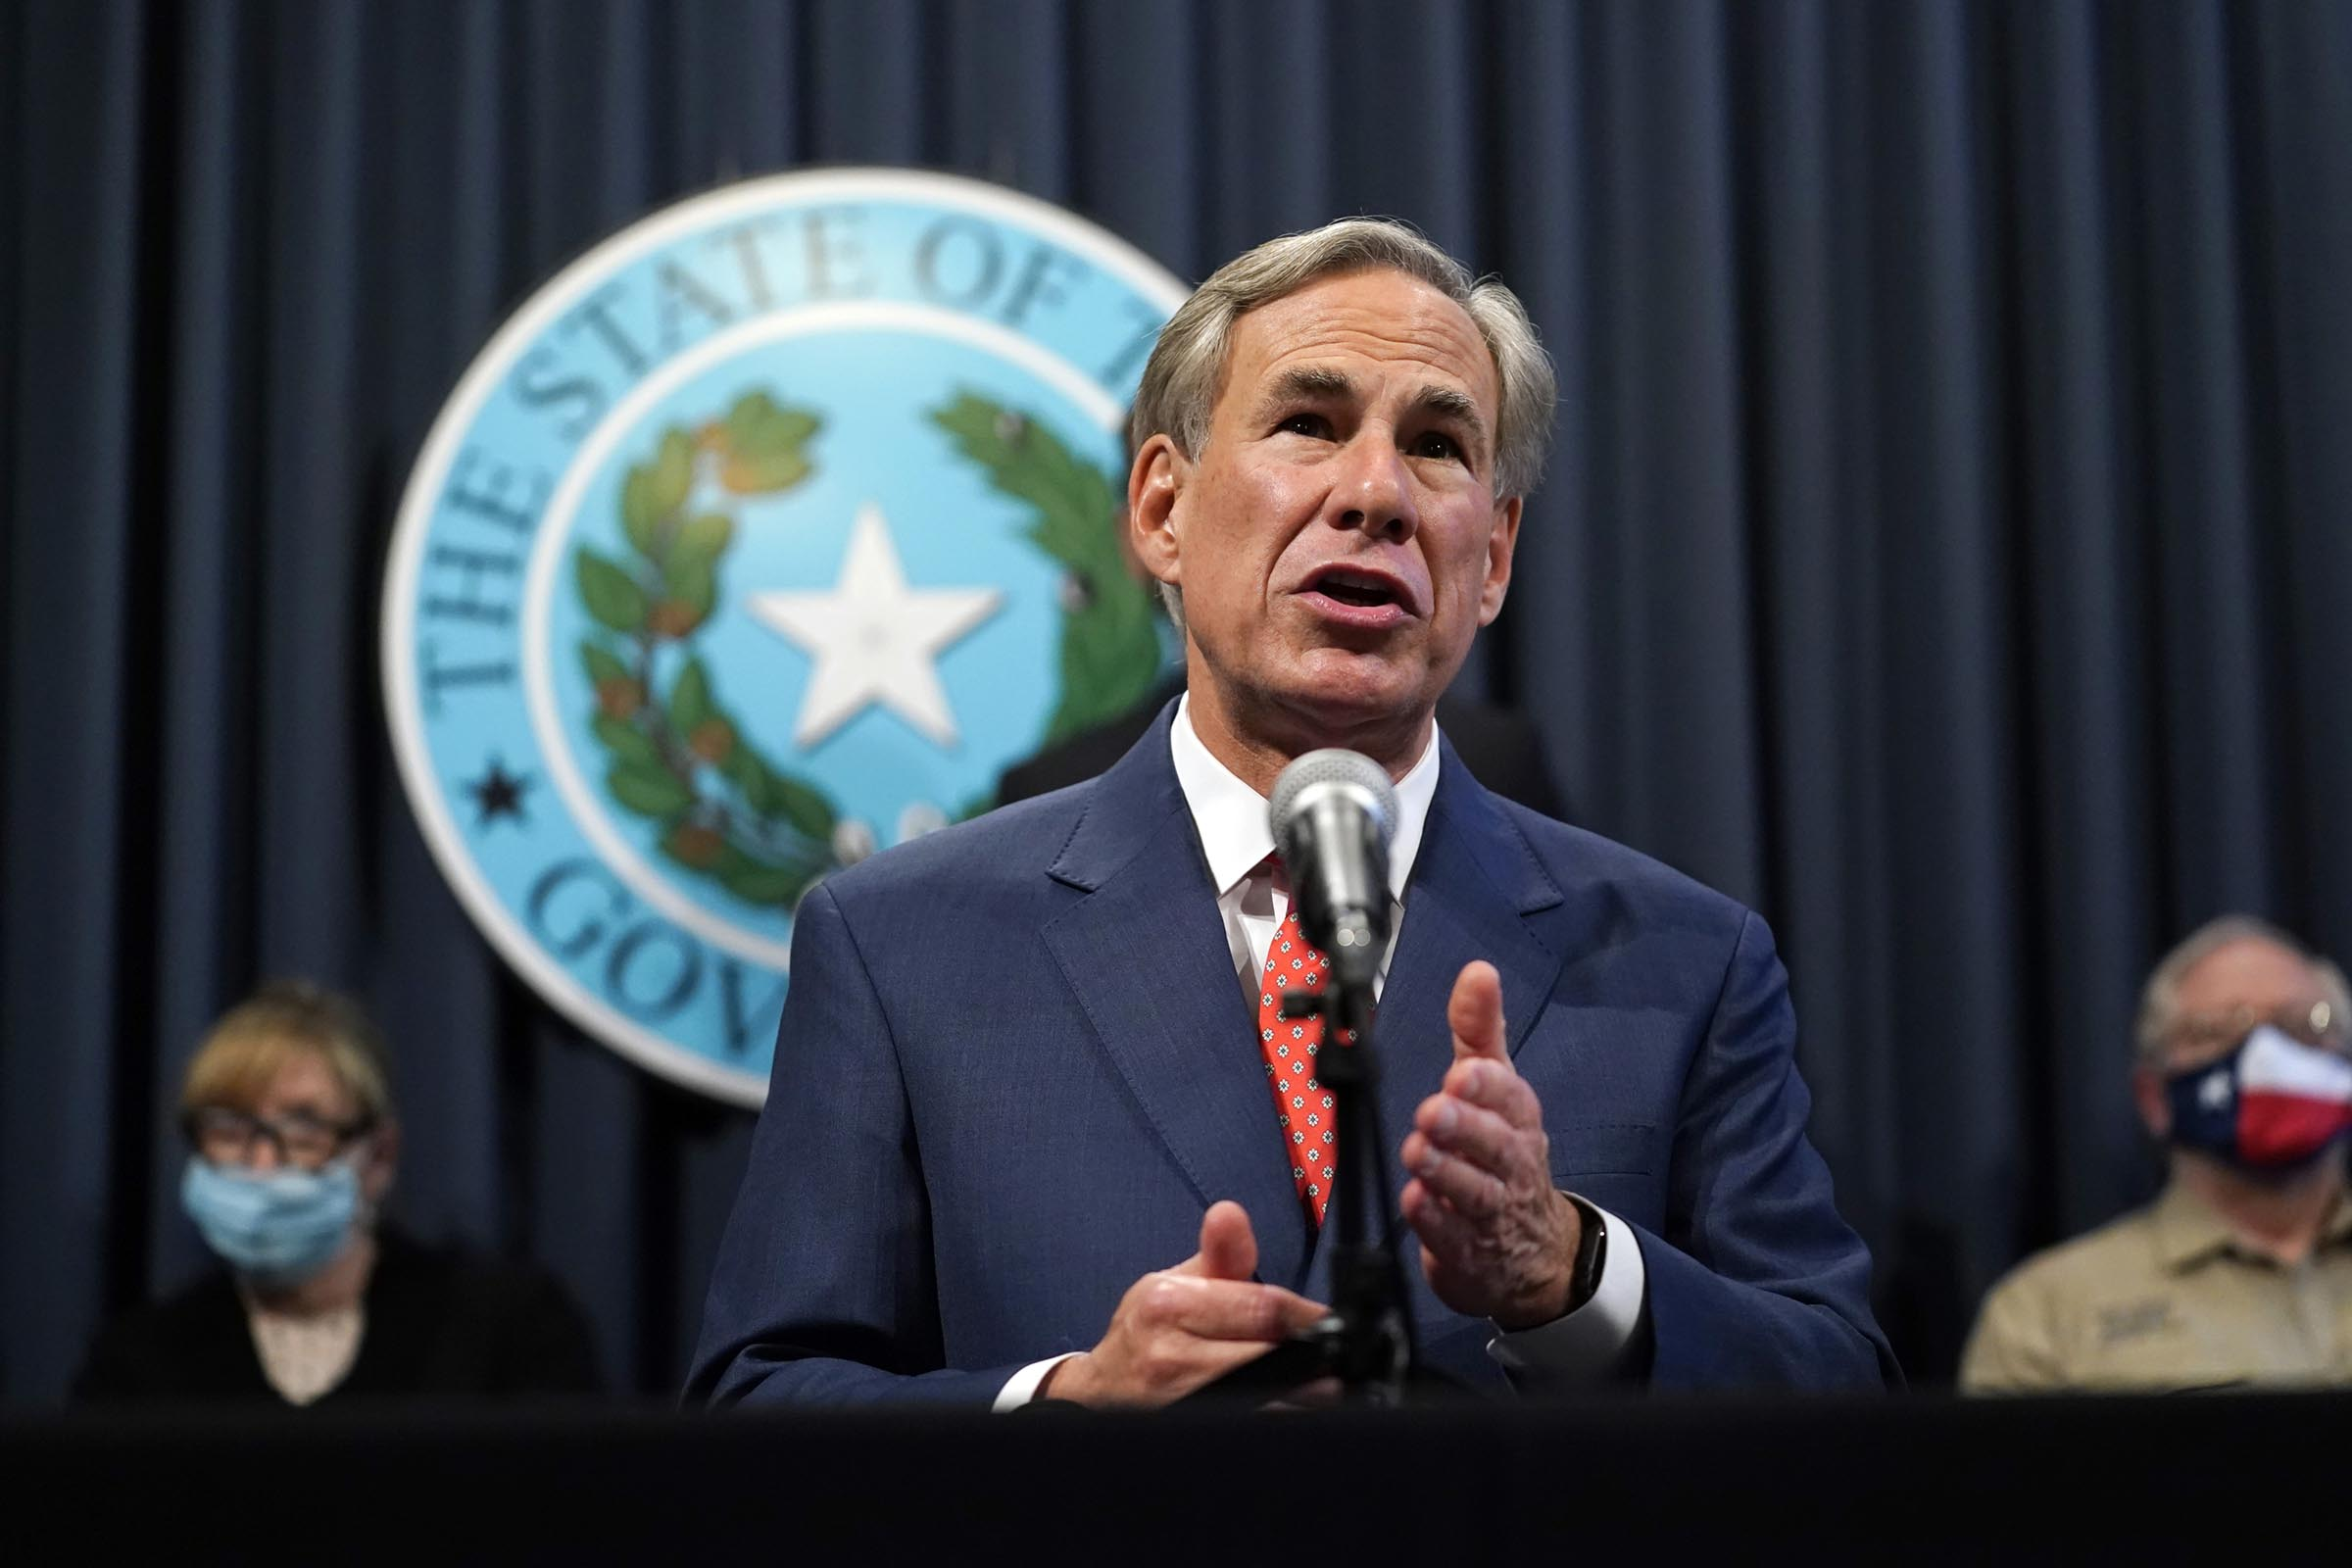 Texas Gov. Greg Abbott speaks during a news conference where he provided an update to Texas' response to COVID-19 in Austin, Texas on Sept. 17, 2020.